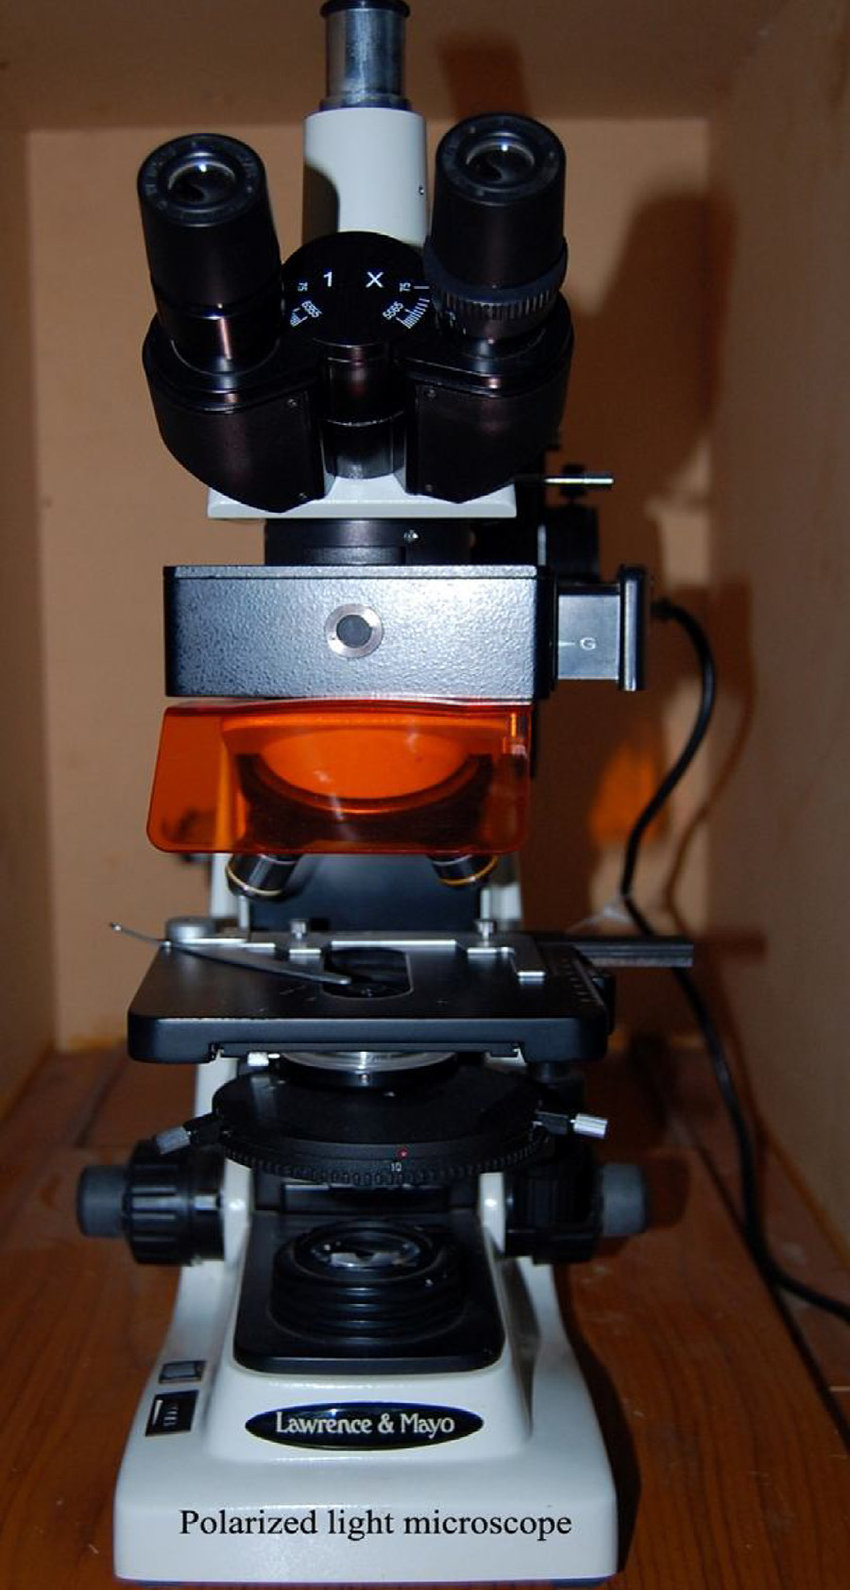 hight resolution of polarized light microscope used in the study